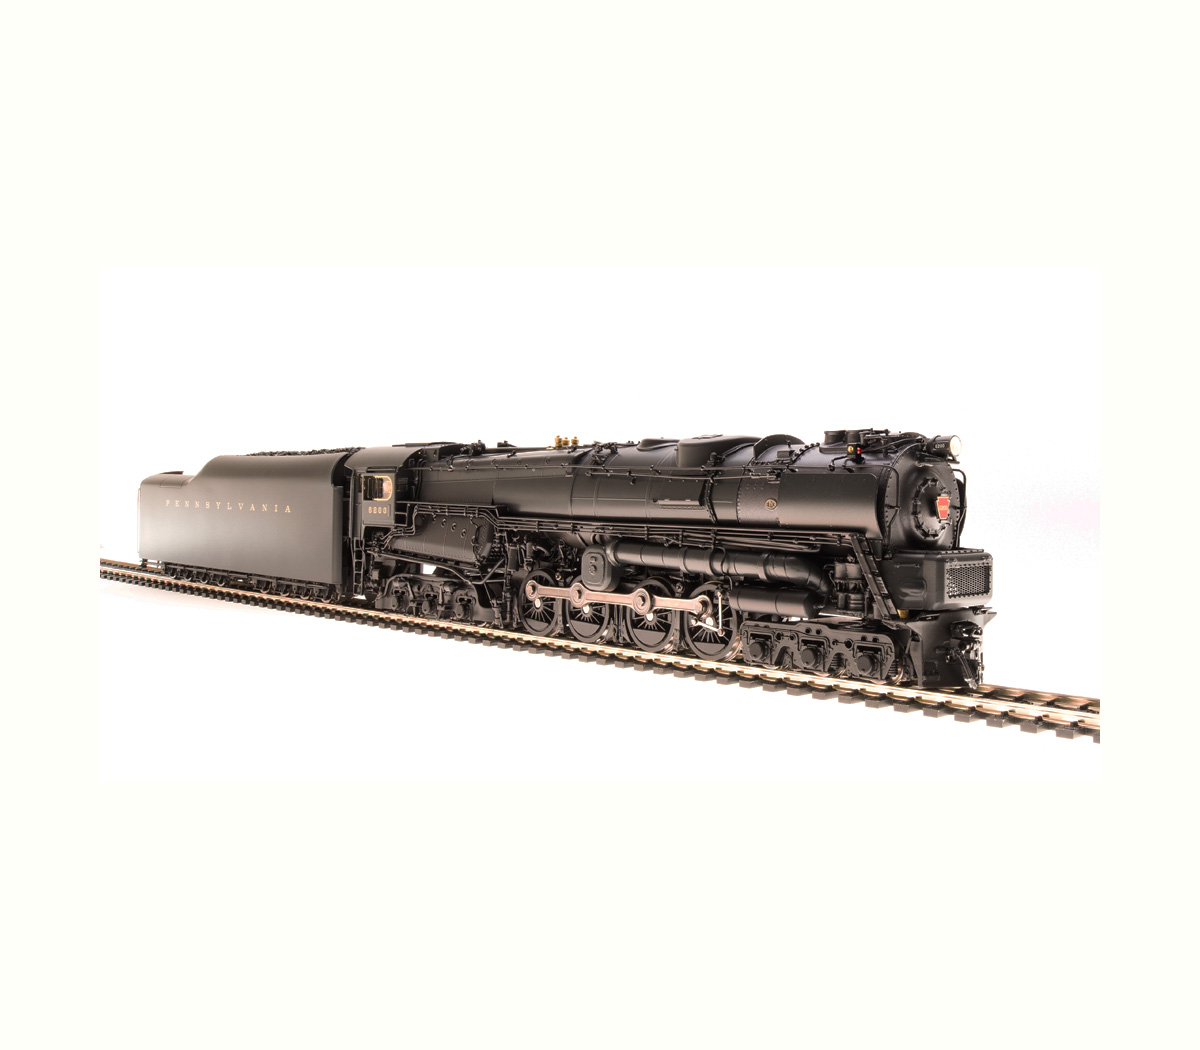 broadway-limited-prr-s2-turbine-small-deflectors-bli-2695